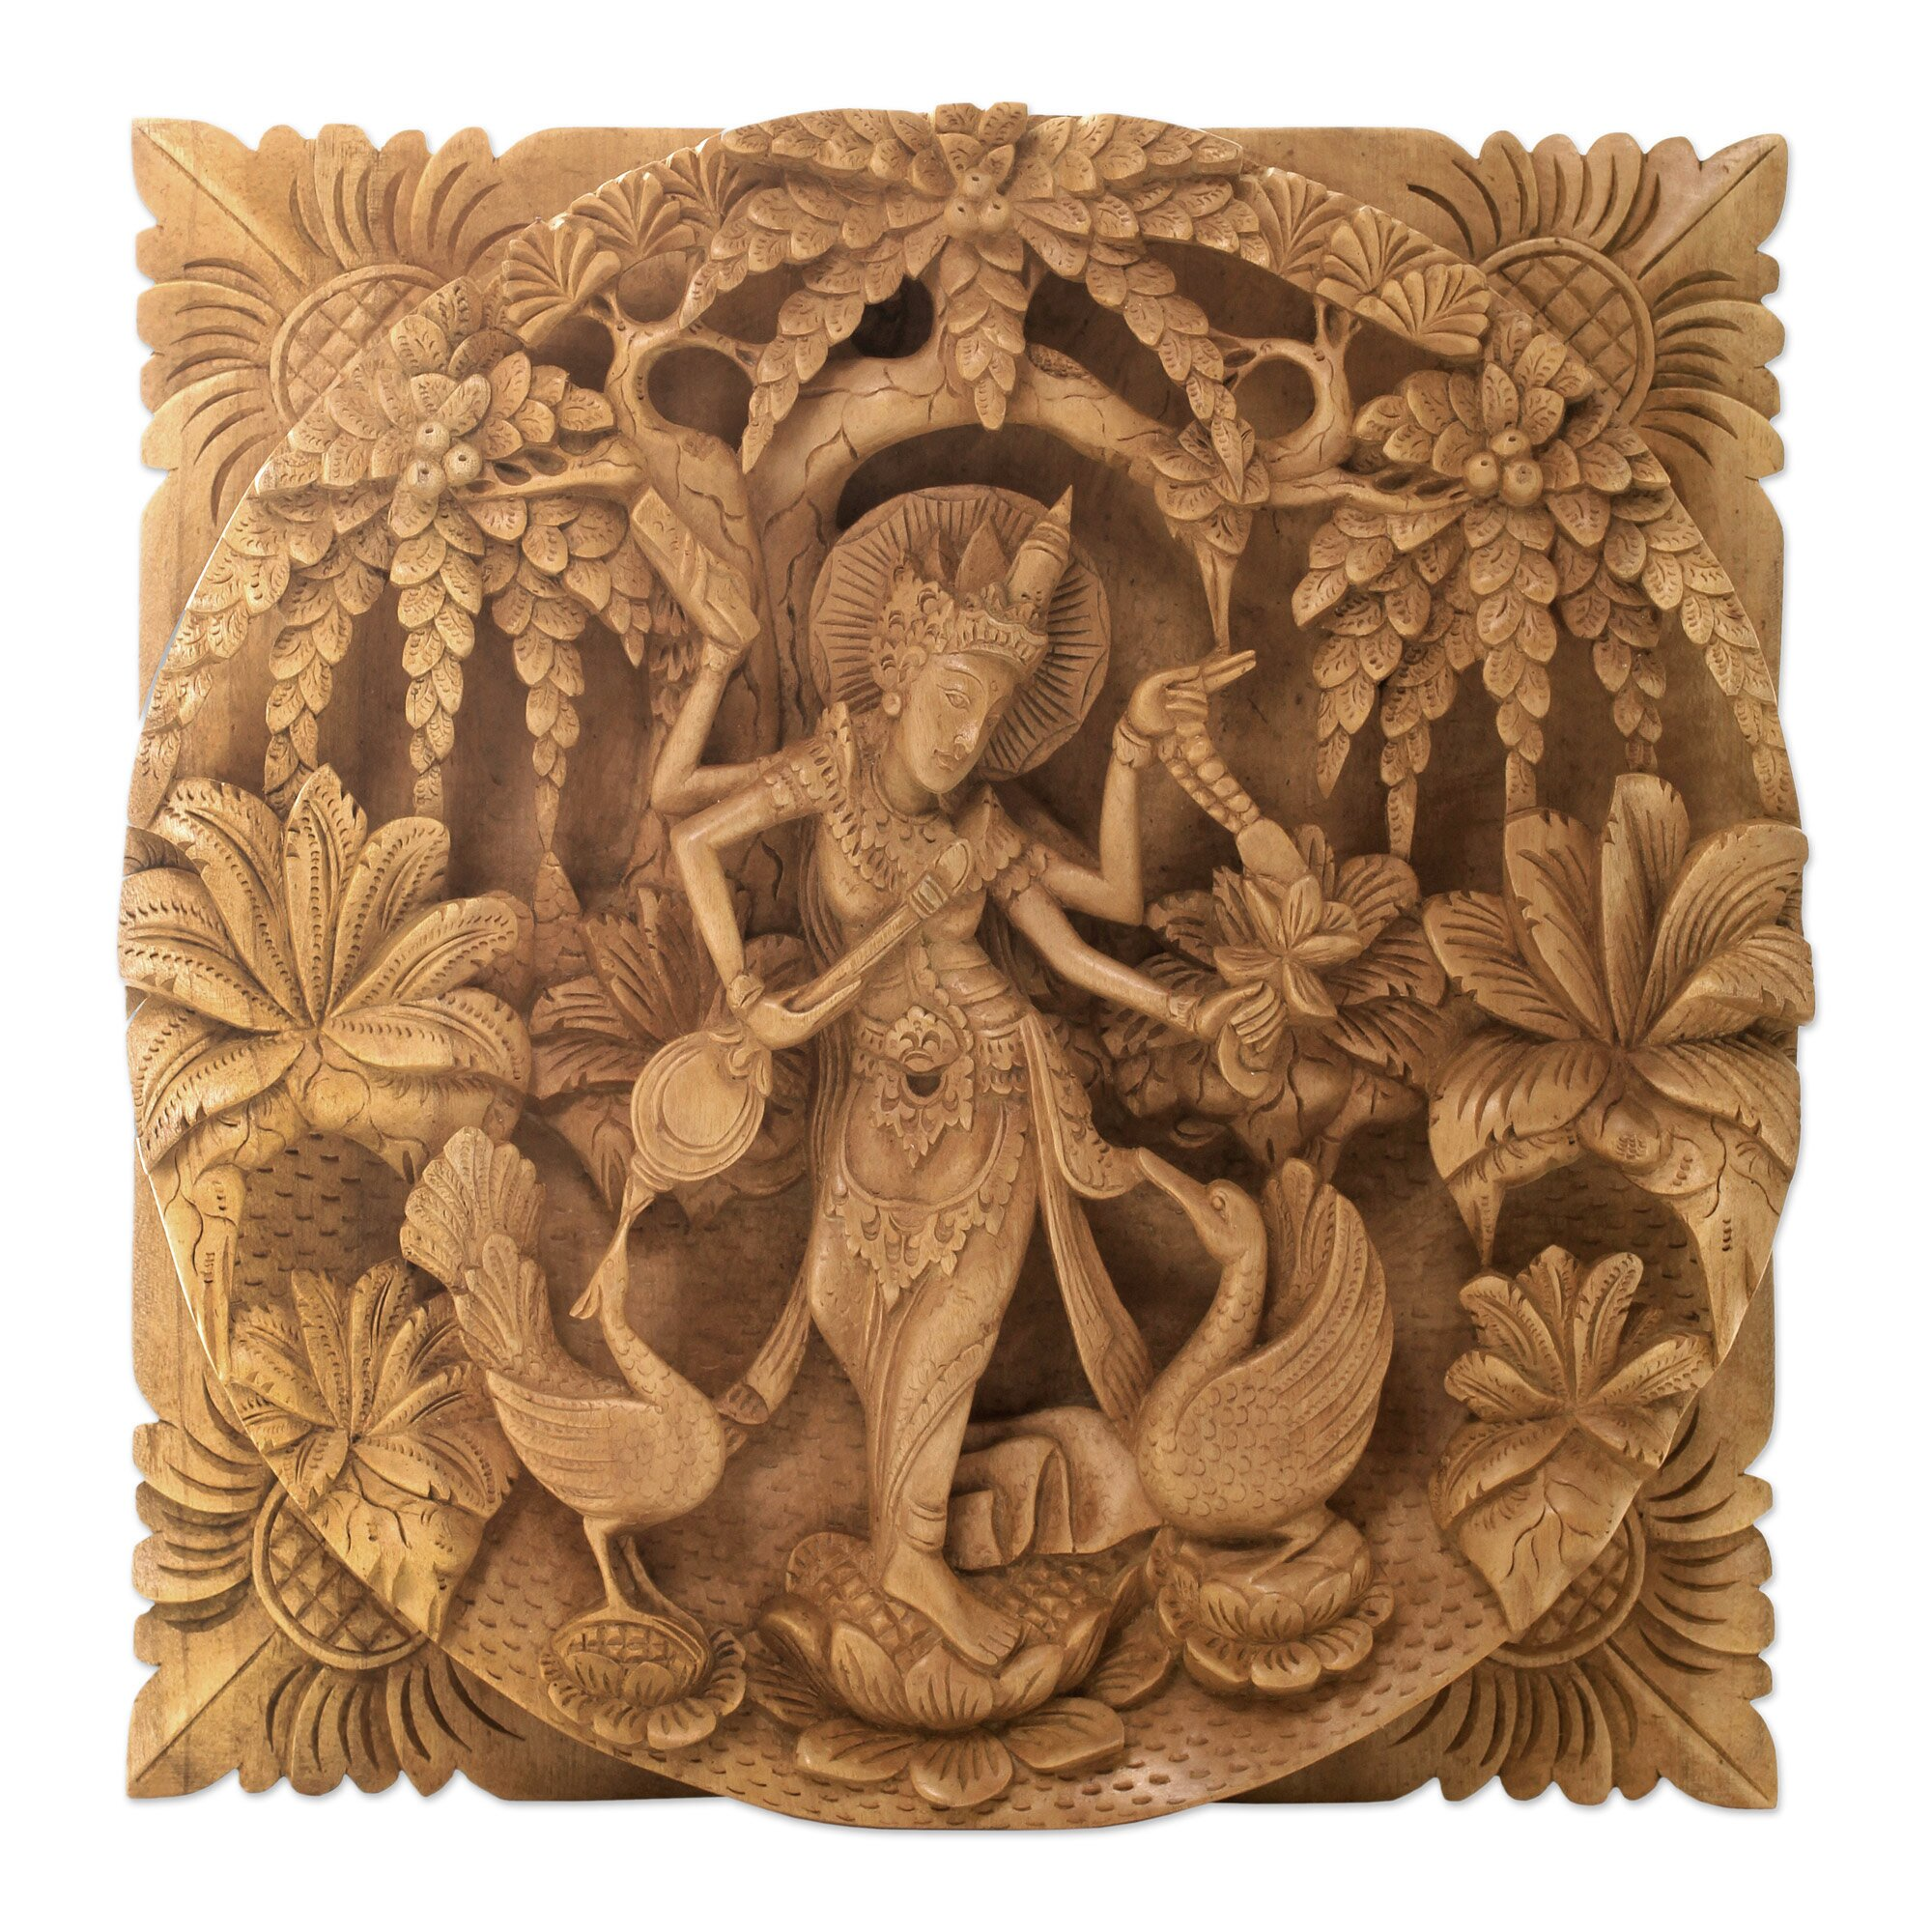 Wonderful image of  Hindu Goddess Themed Carved Wood Relief Panel Wall Décor Wayfair with #A86D23 color and 2000x2000 pixels